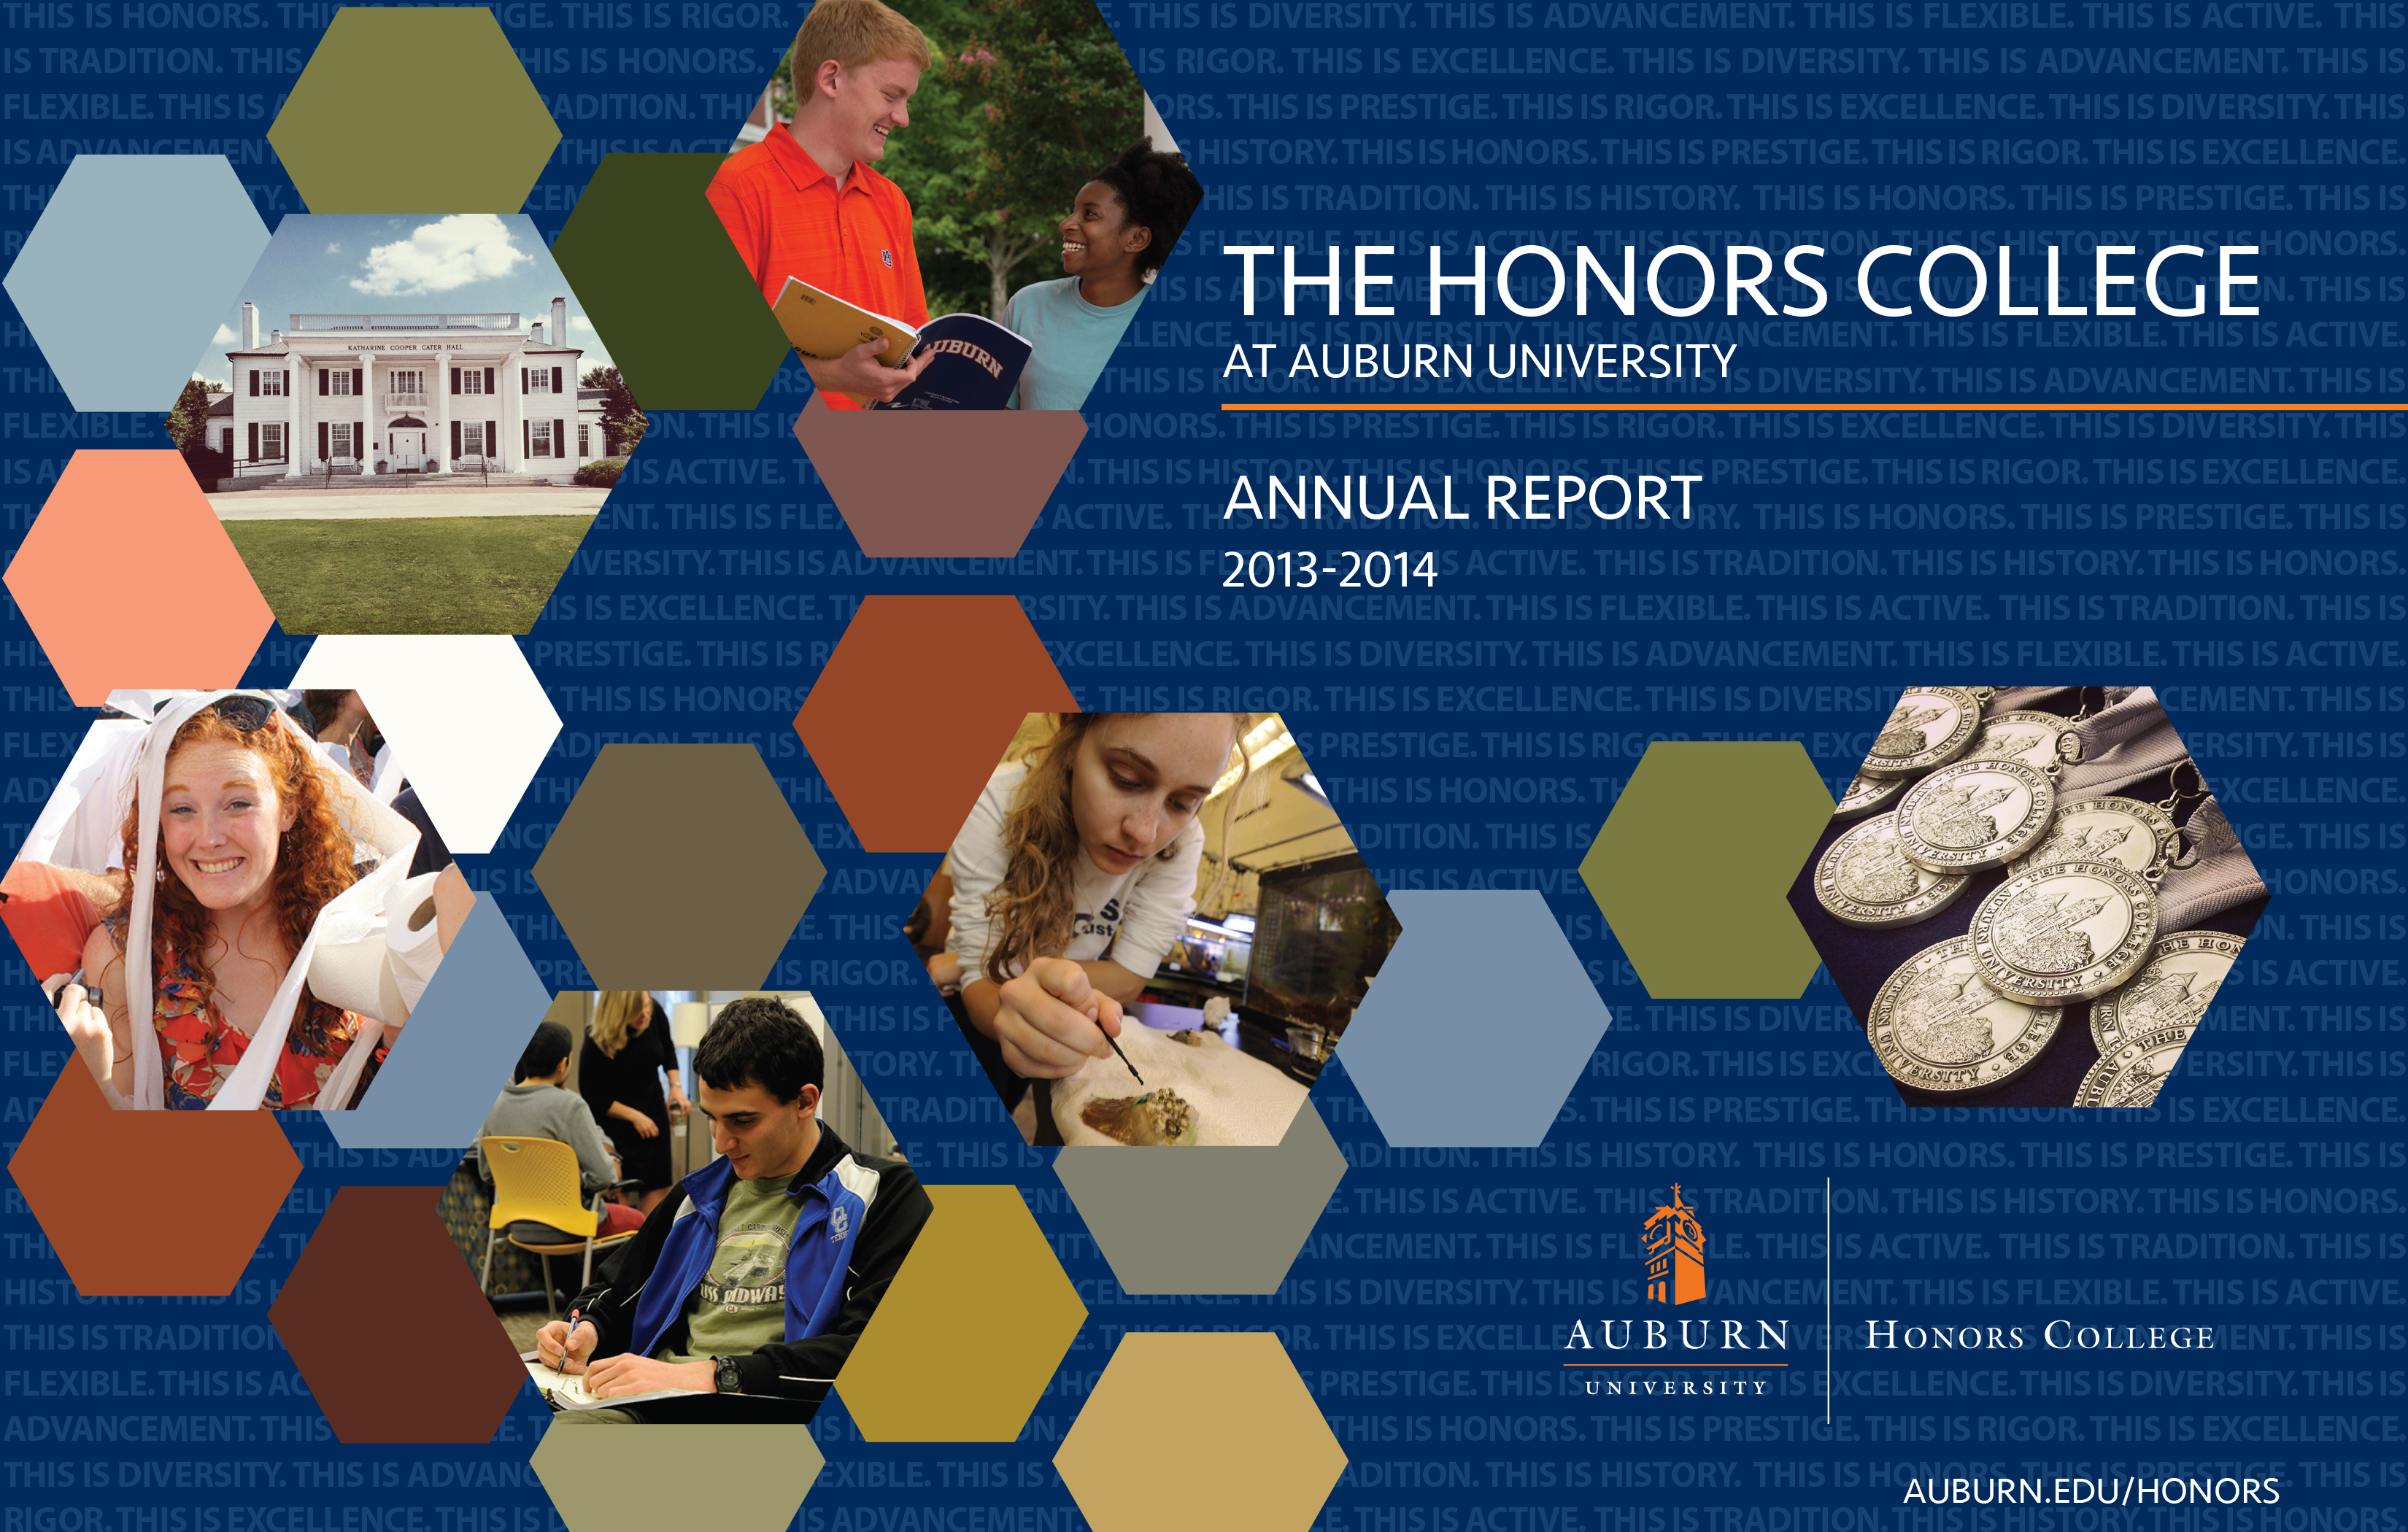 Cover of the 2013-2014 Annual Report